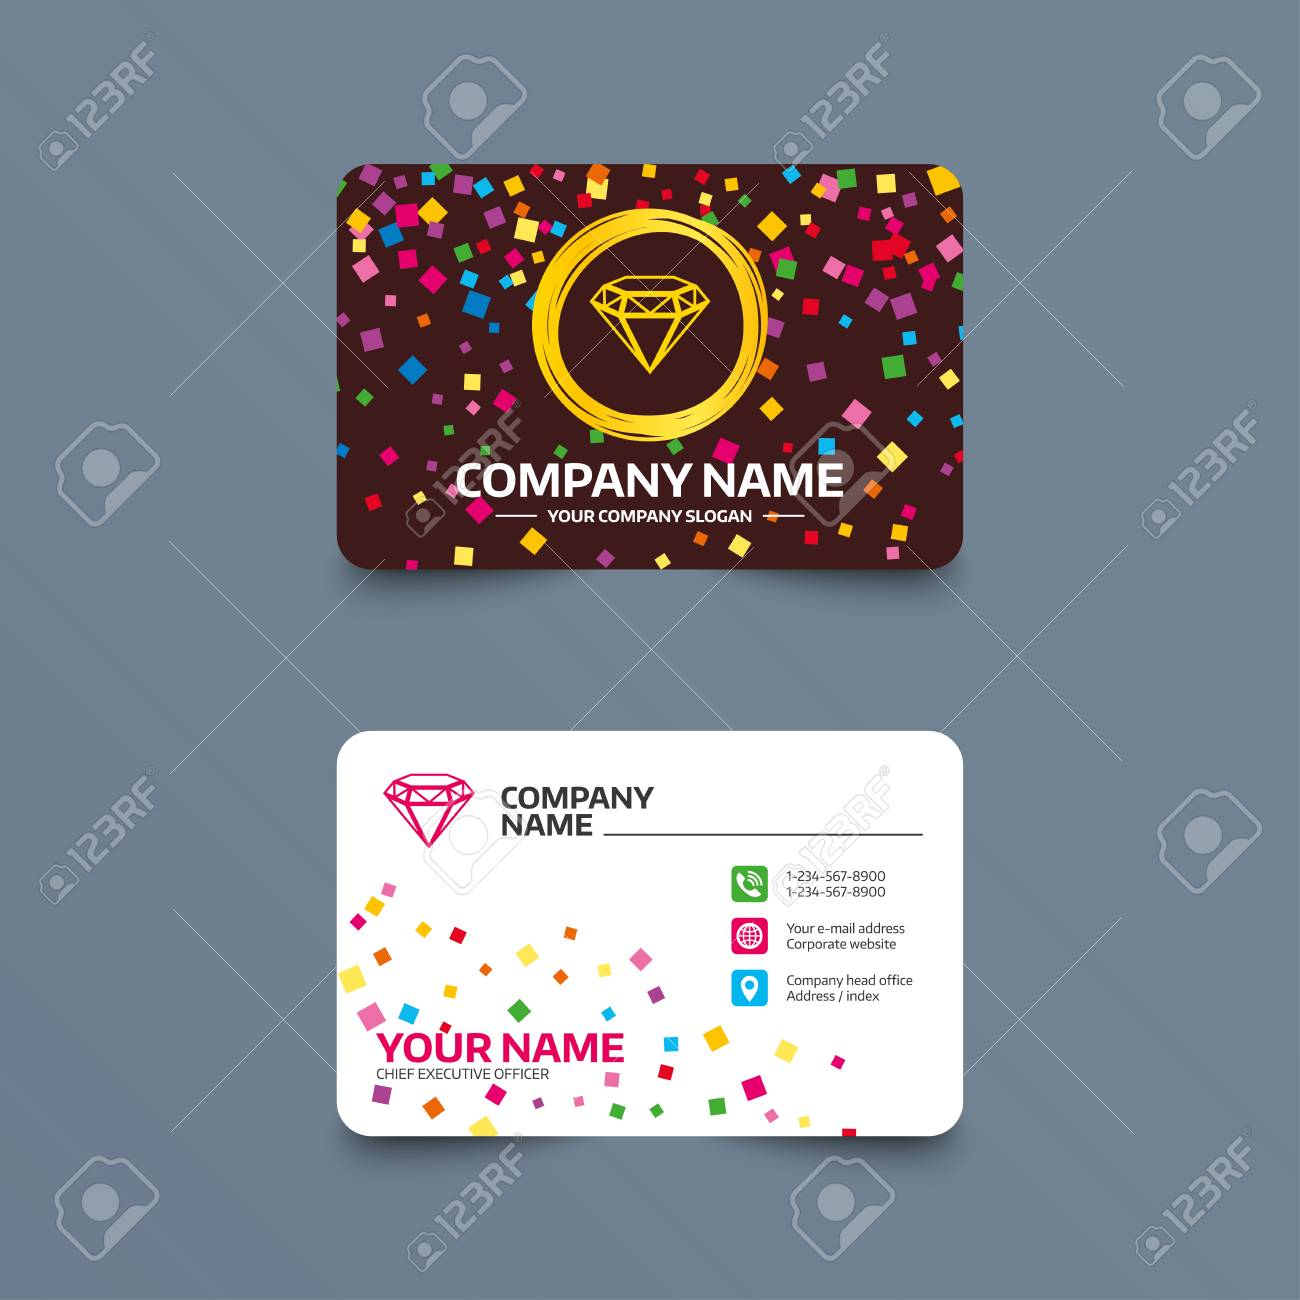 Business Card Template With Confetti Pieces. Diamond Sign Icon ...